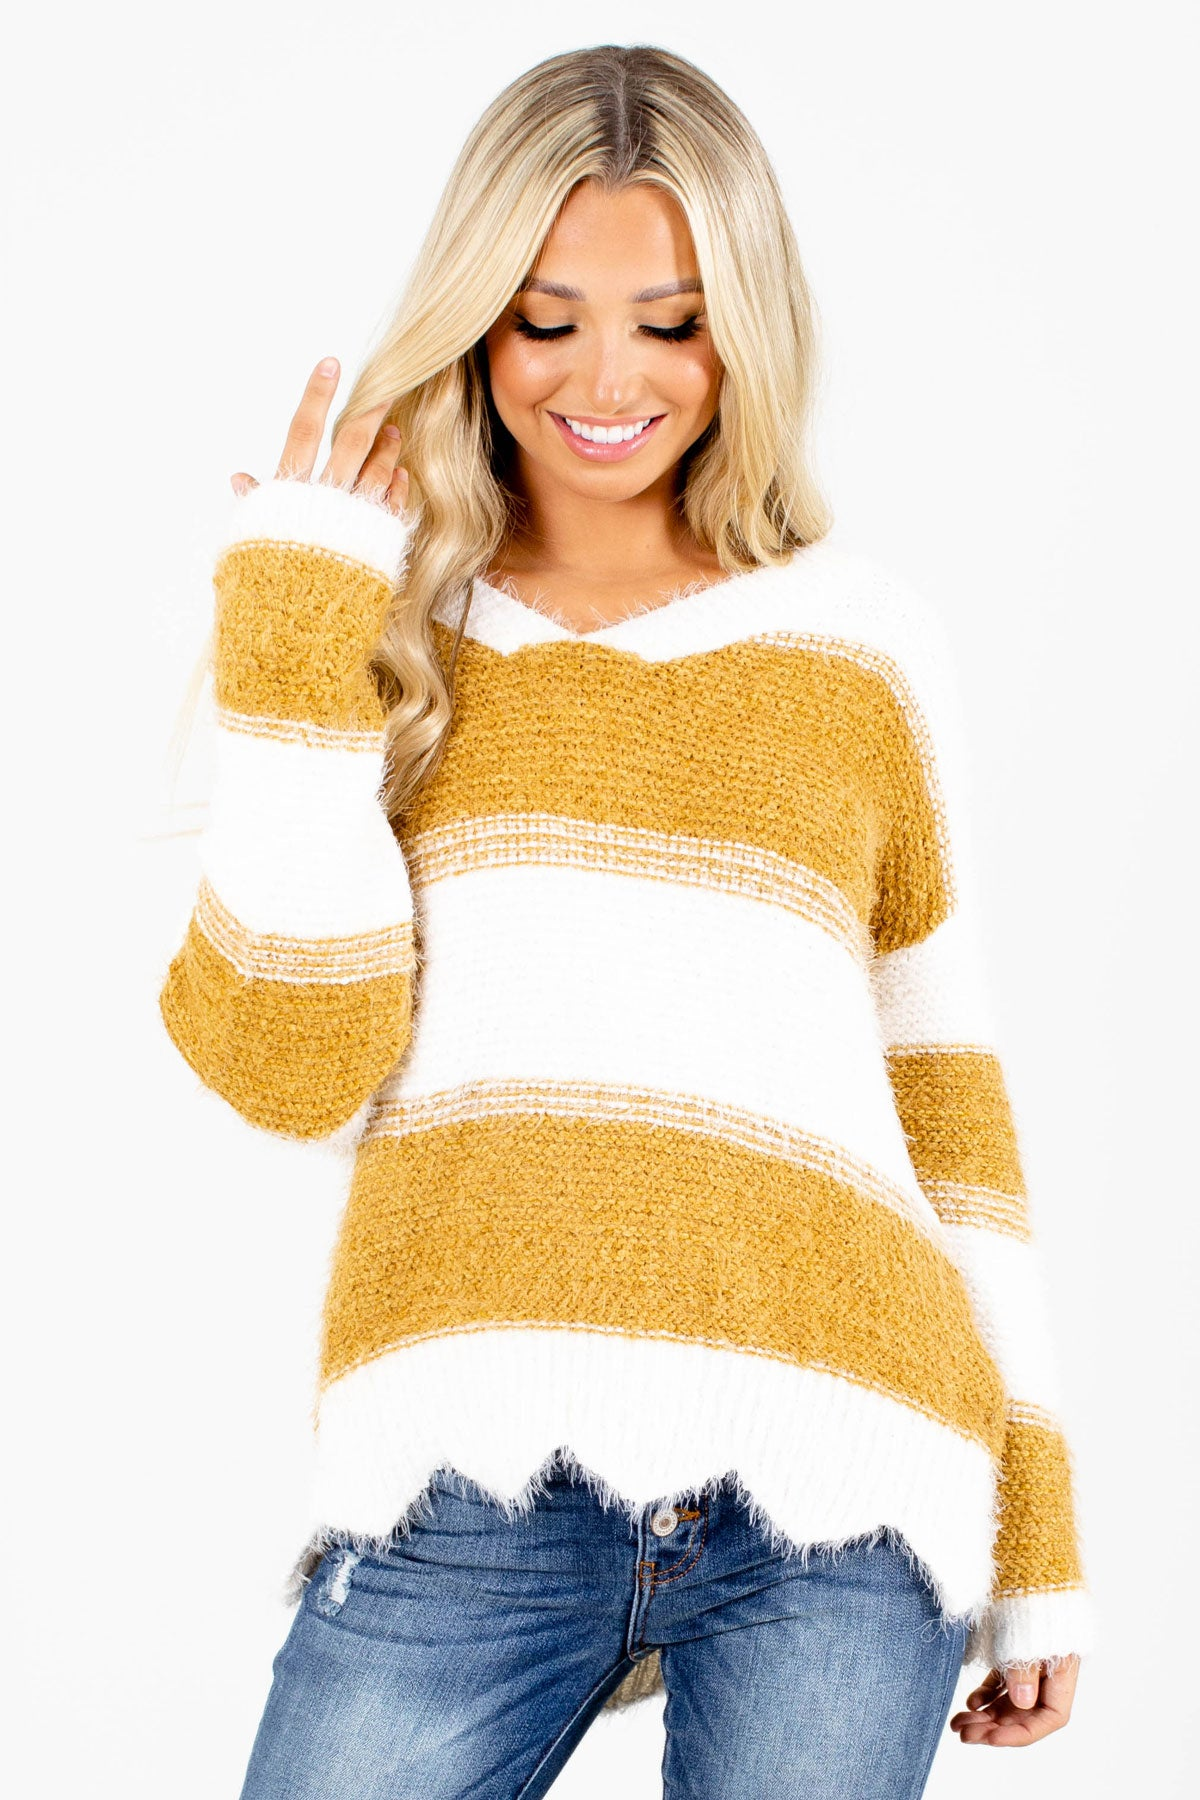 Mustard Yellow and White Striped Boutique Sweaters for Women